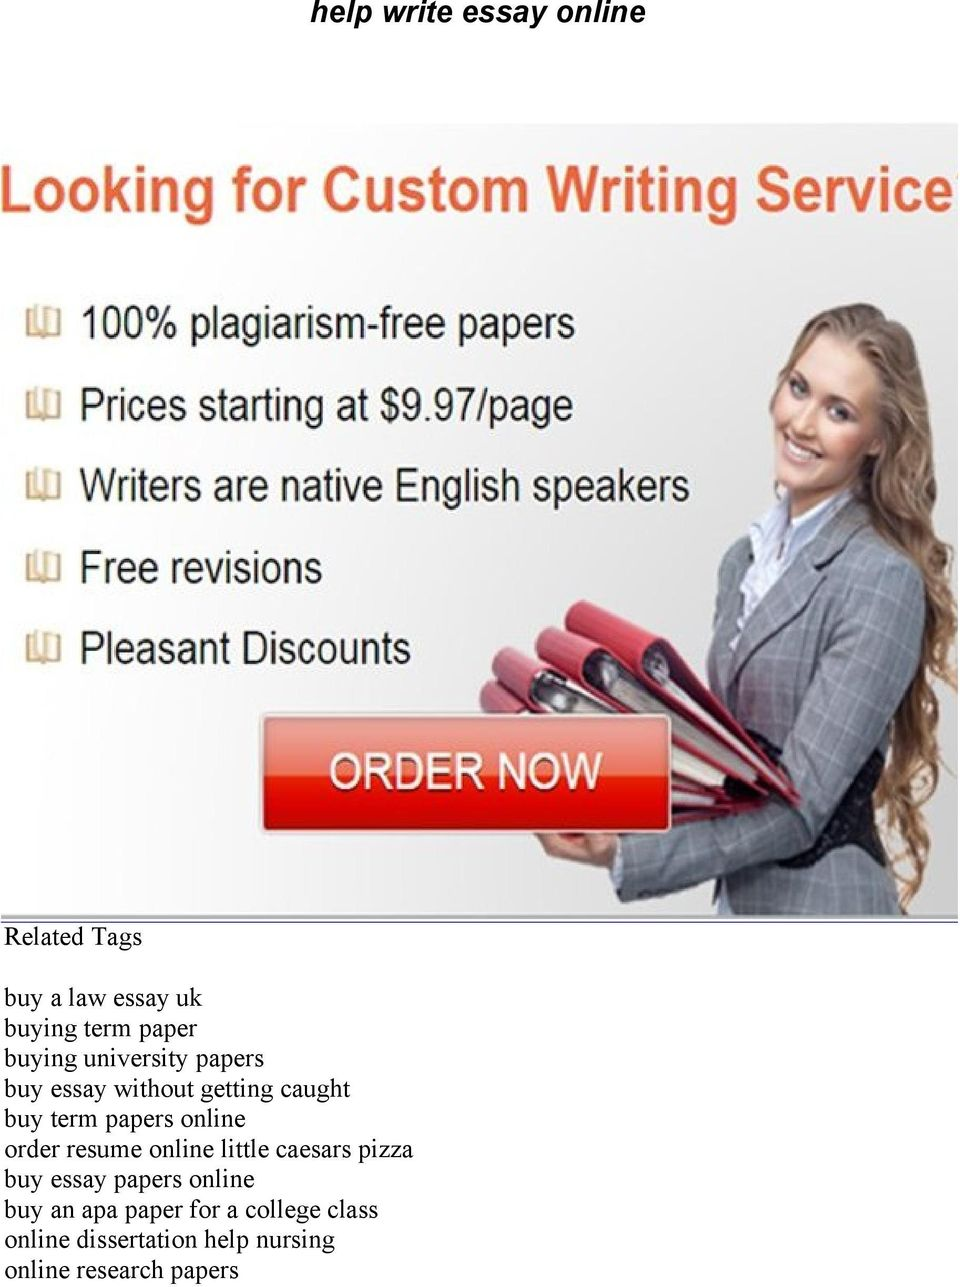 online order resume online little caesars pizza buy essay papers online buy